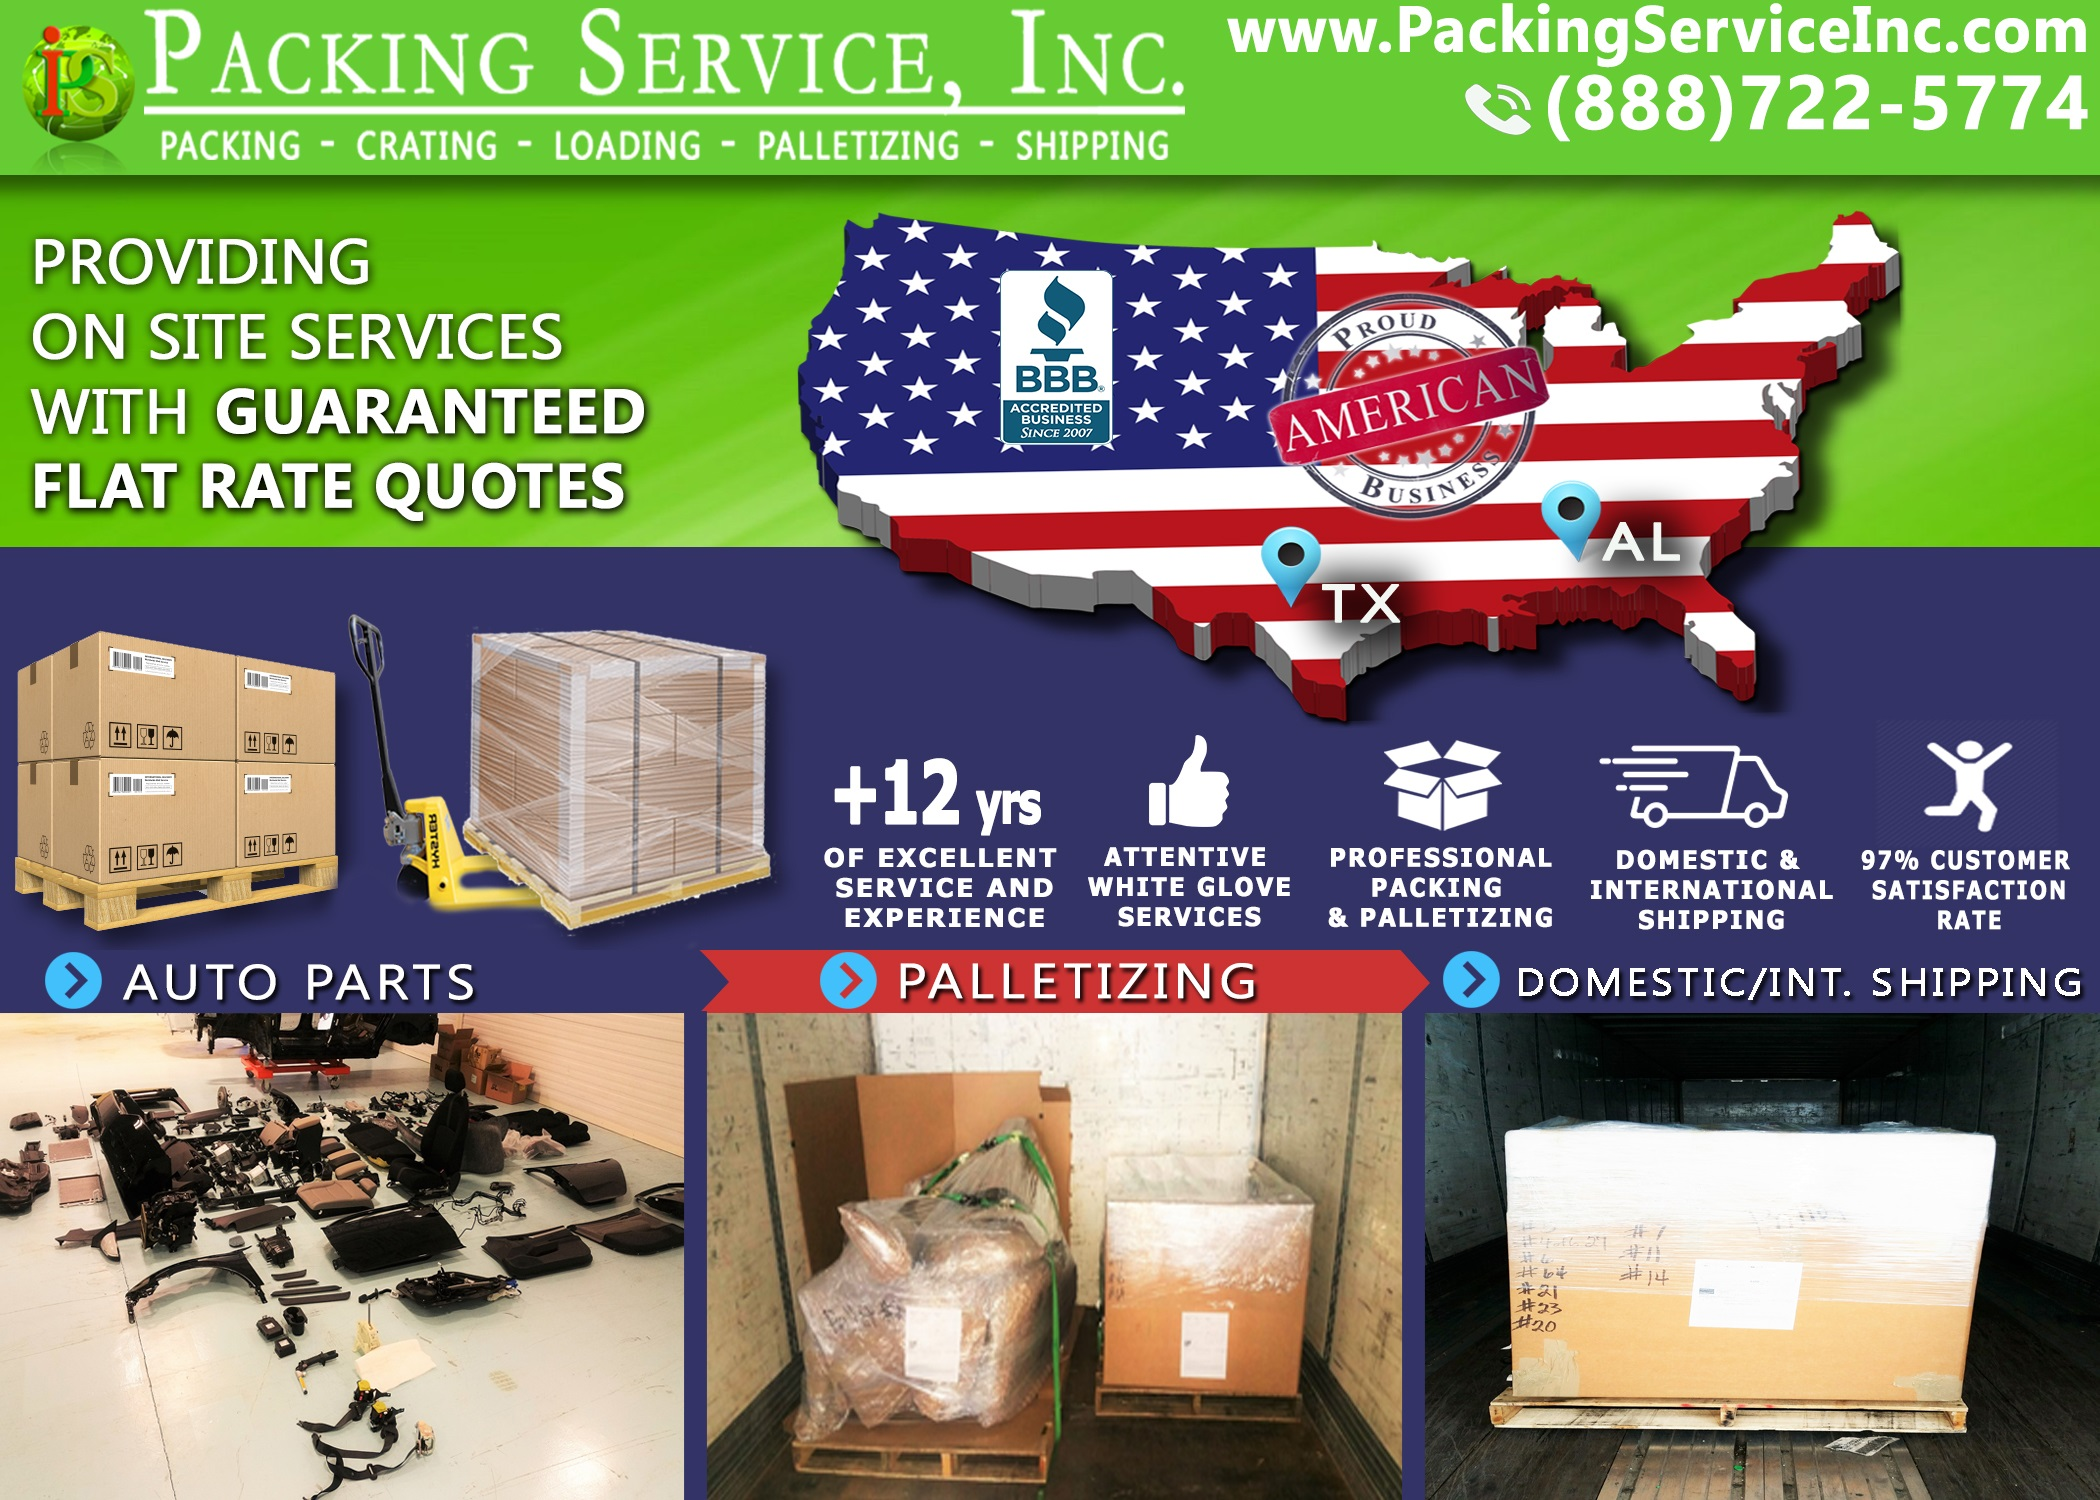 wrapping-and-packing-car-parts-in-boxes-palletizing-and-shipping-services-with-packing-service-inc-275